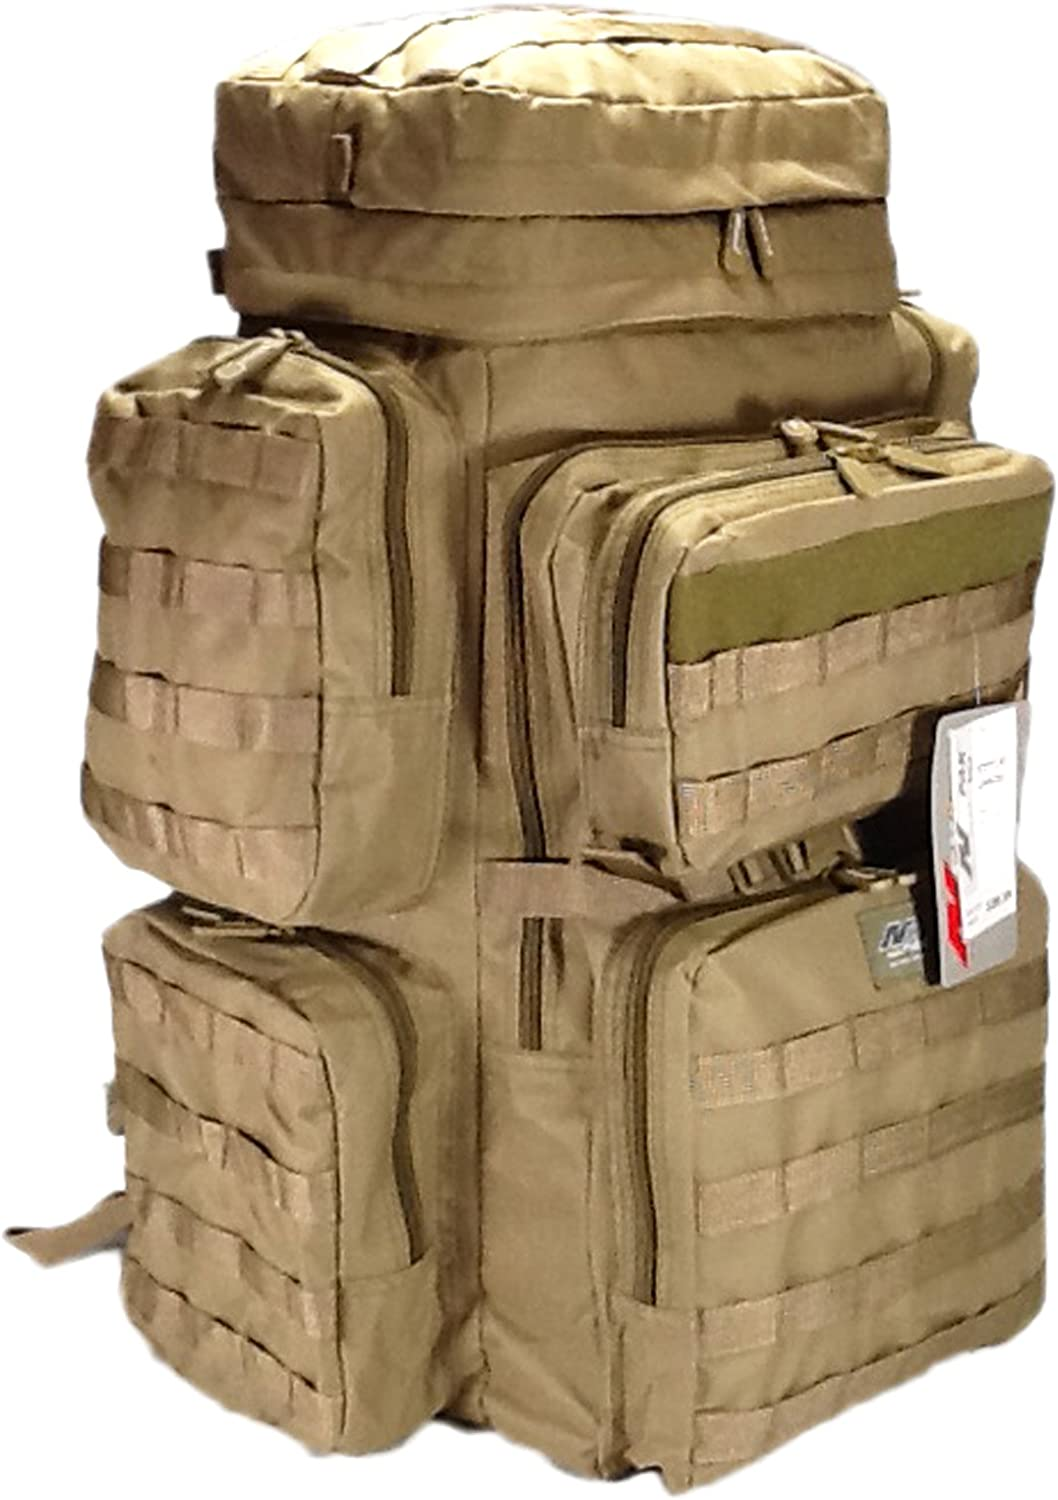 30 4500cu. in. Tactical Hunting Camping Hiking Backpack OP830 TAN